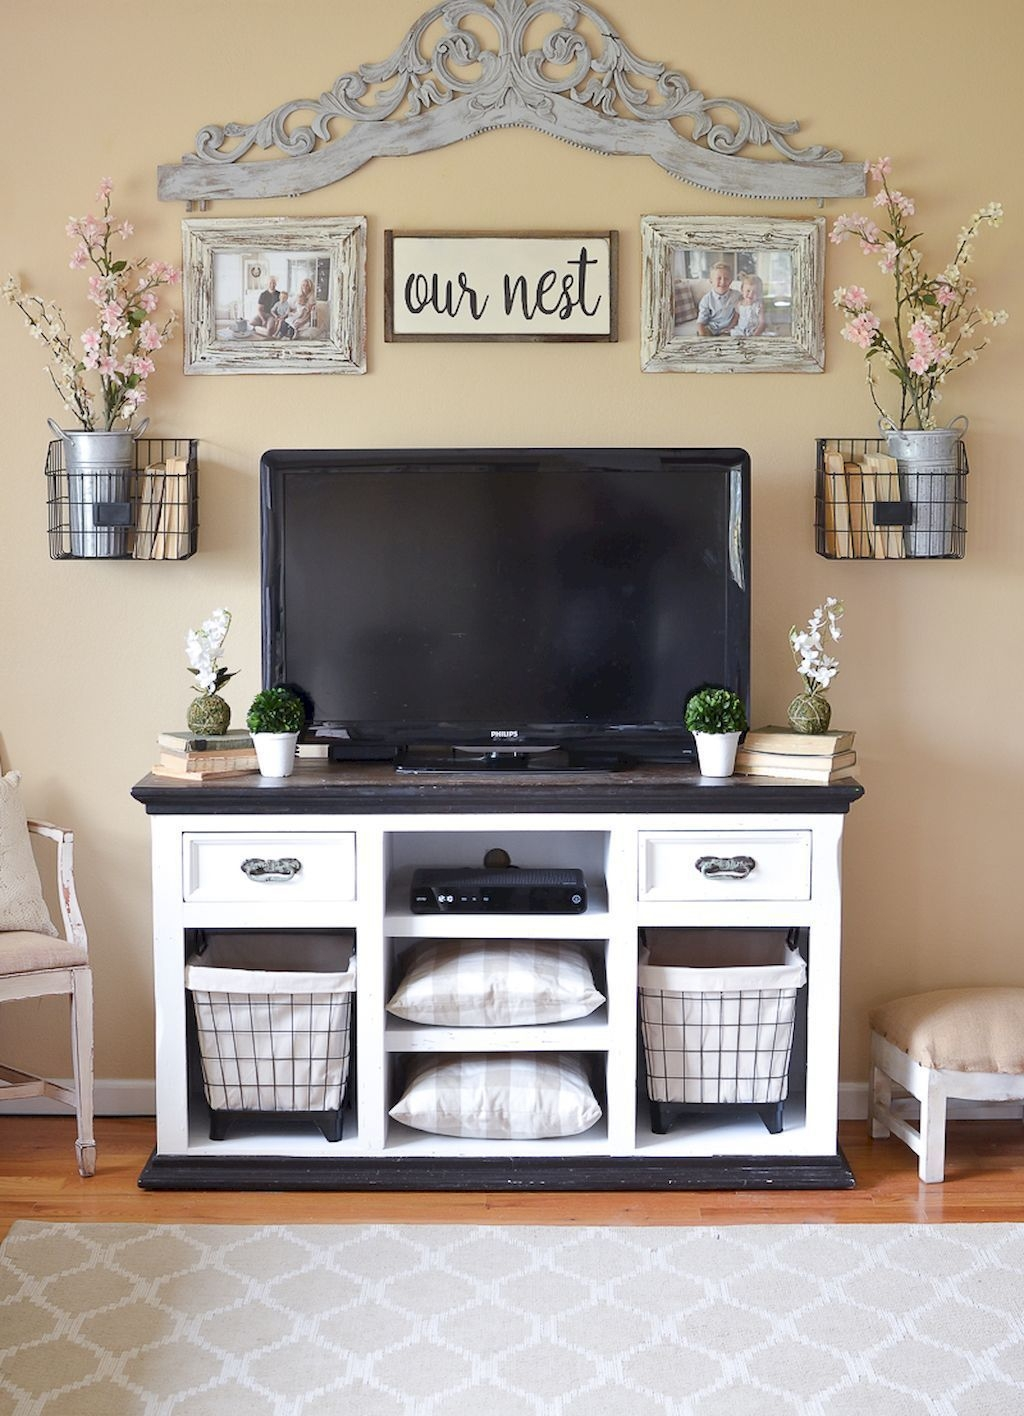 Easy Diy College Apartment Decorating Ideas On A Budget 04